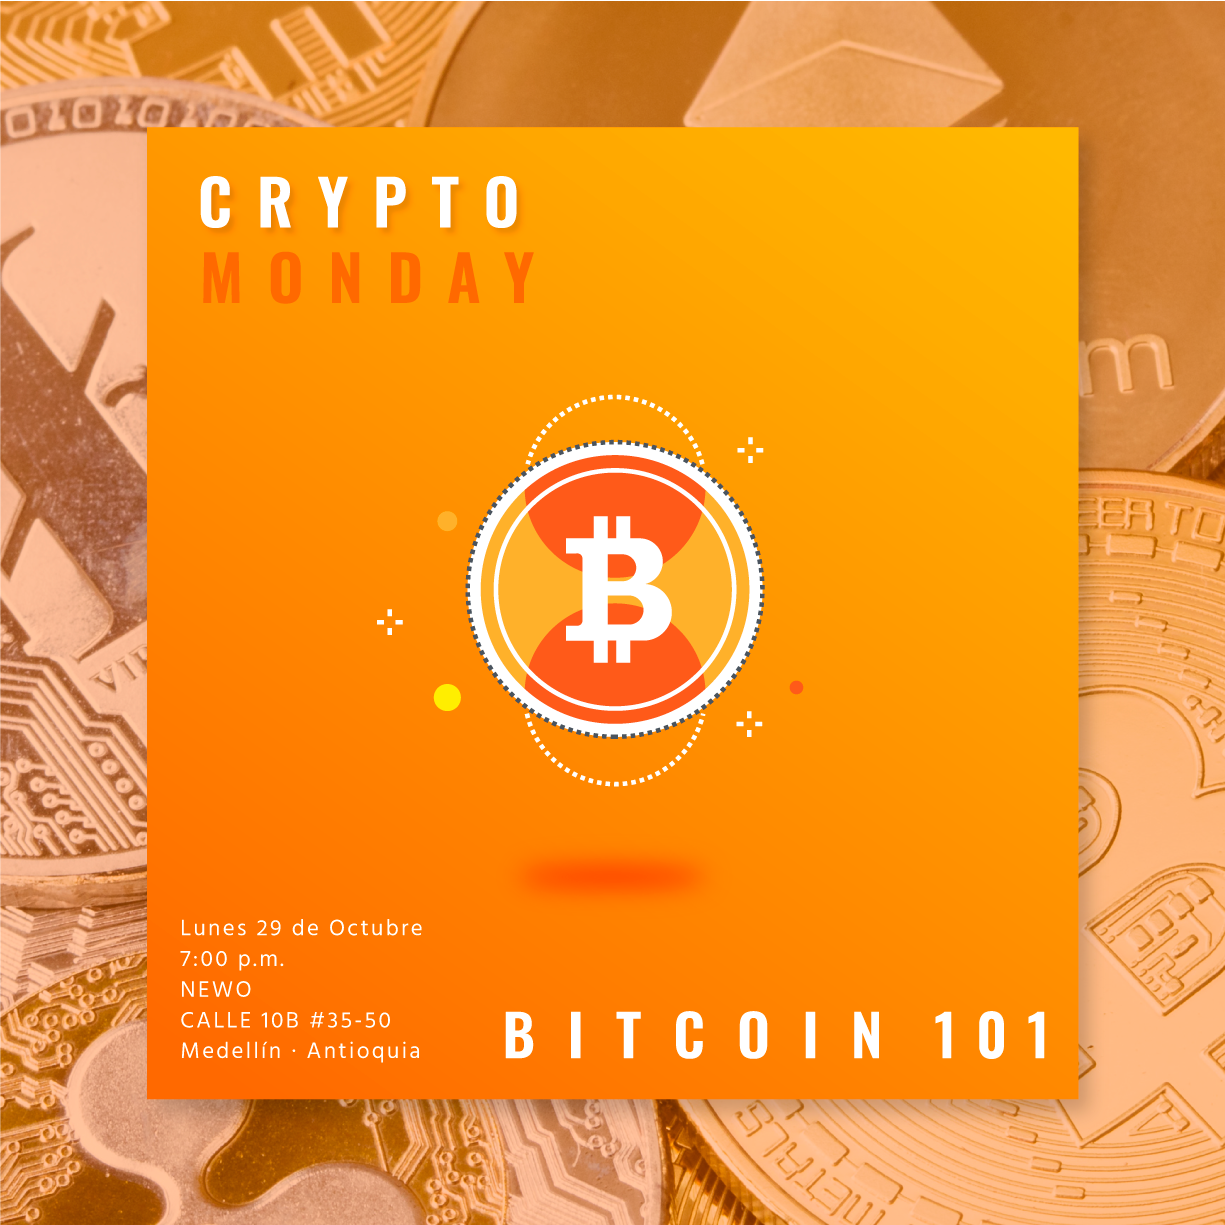 Cryptomondaybitcoin15405051121540505112